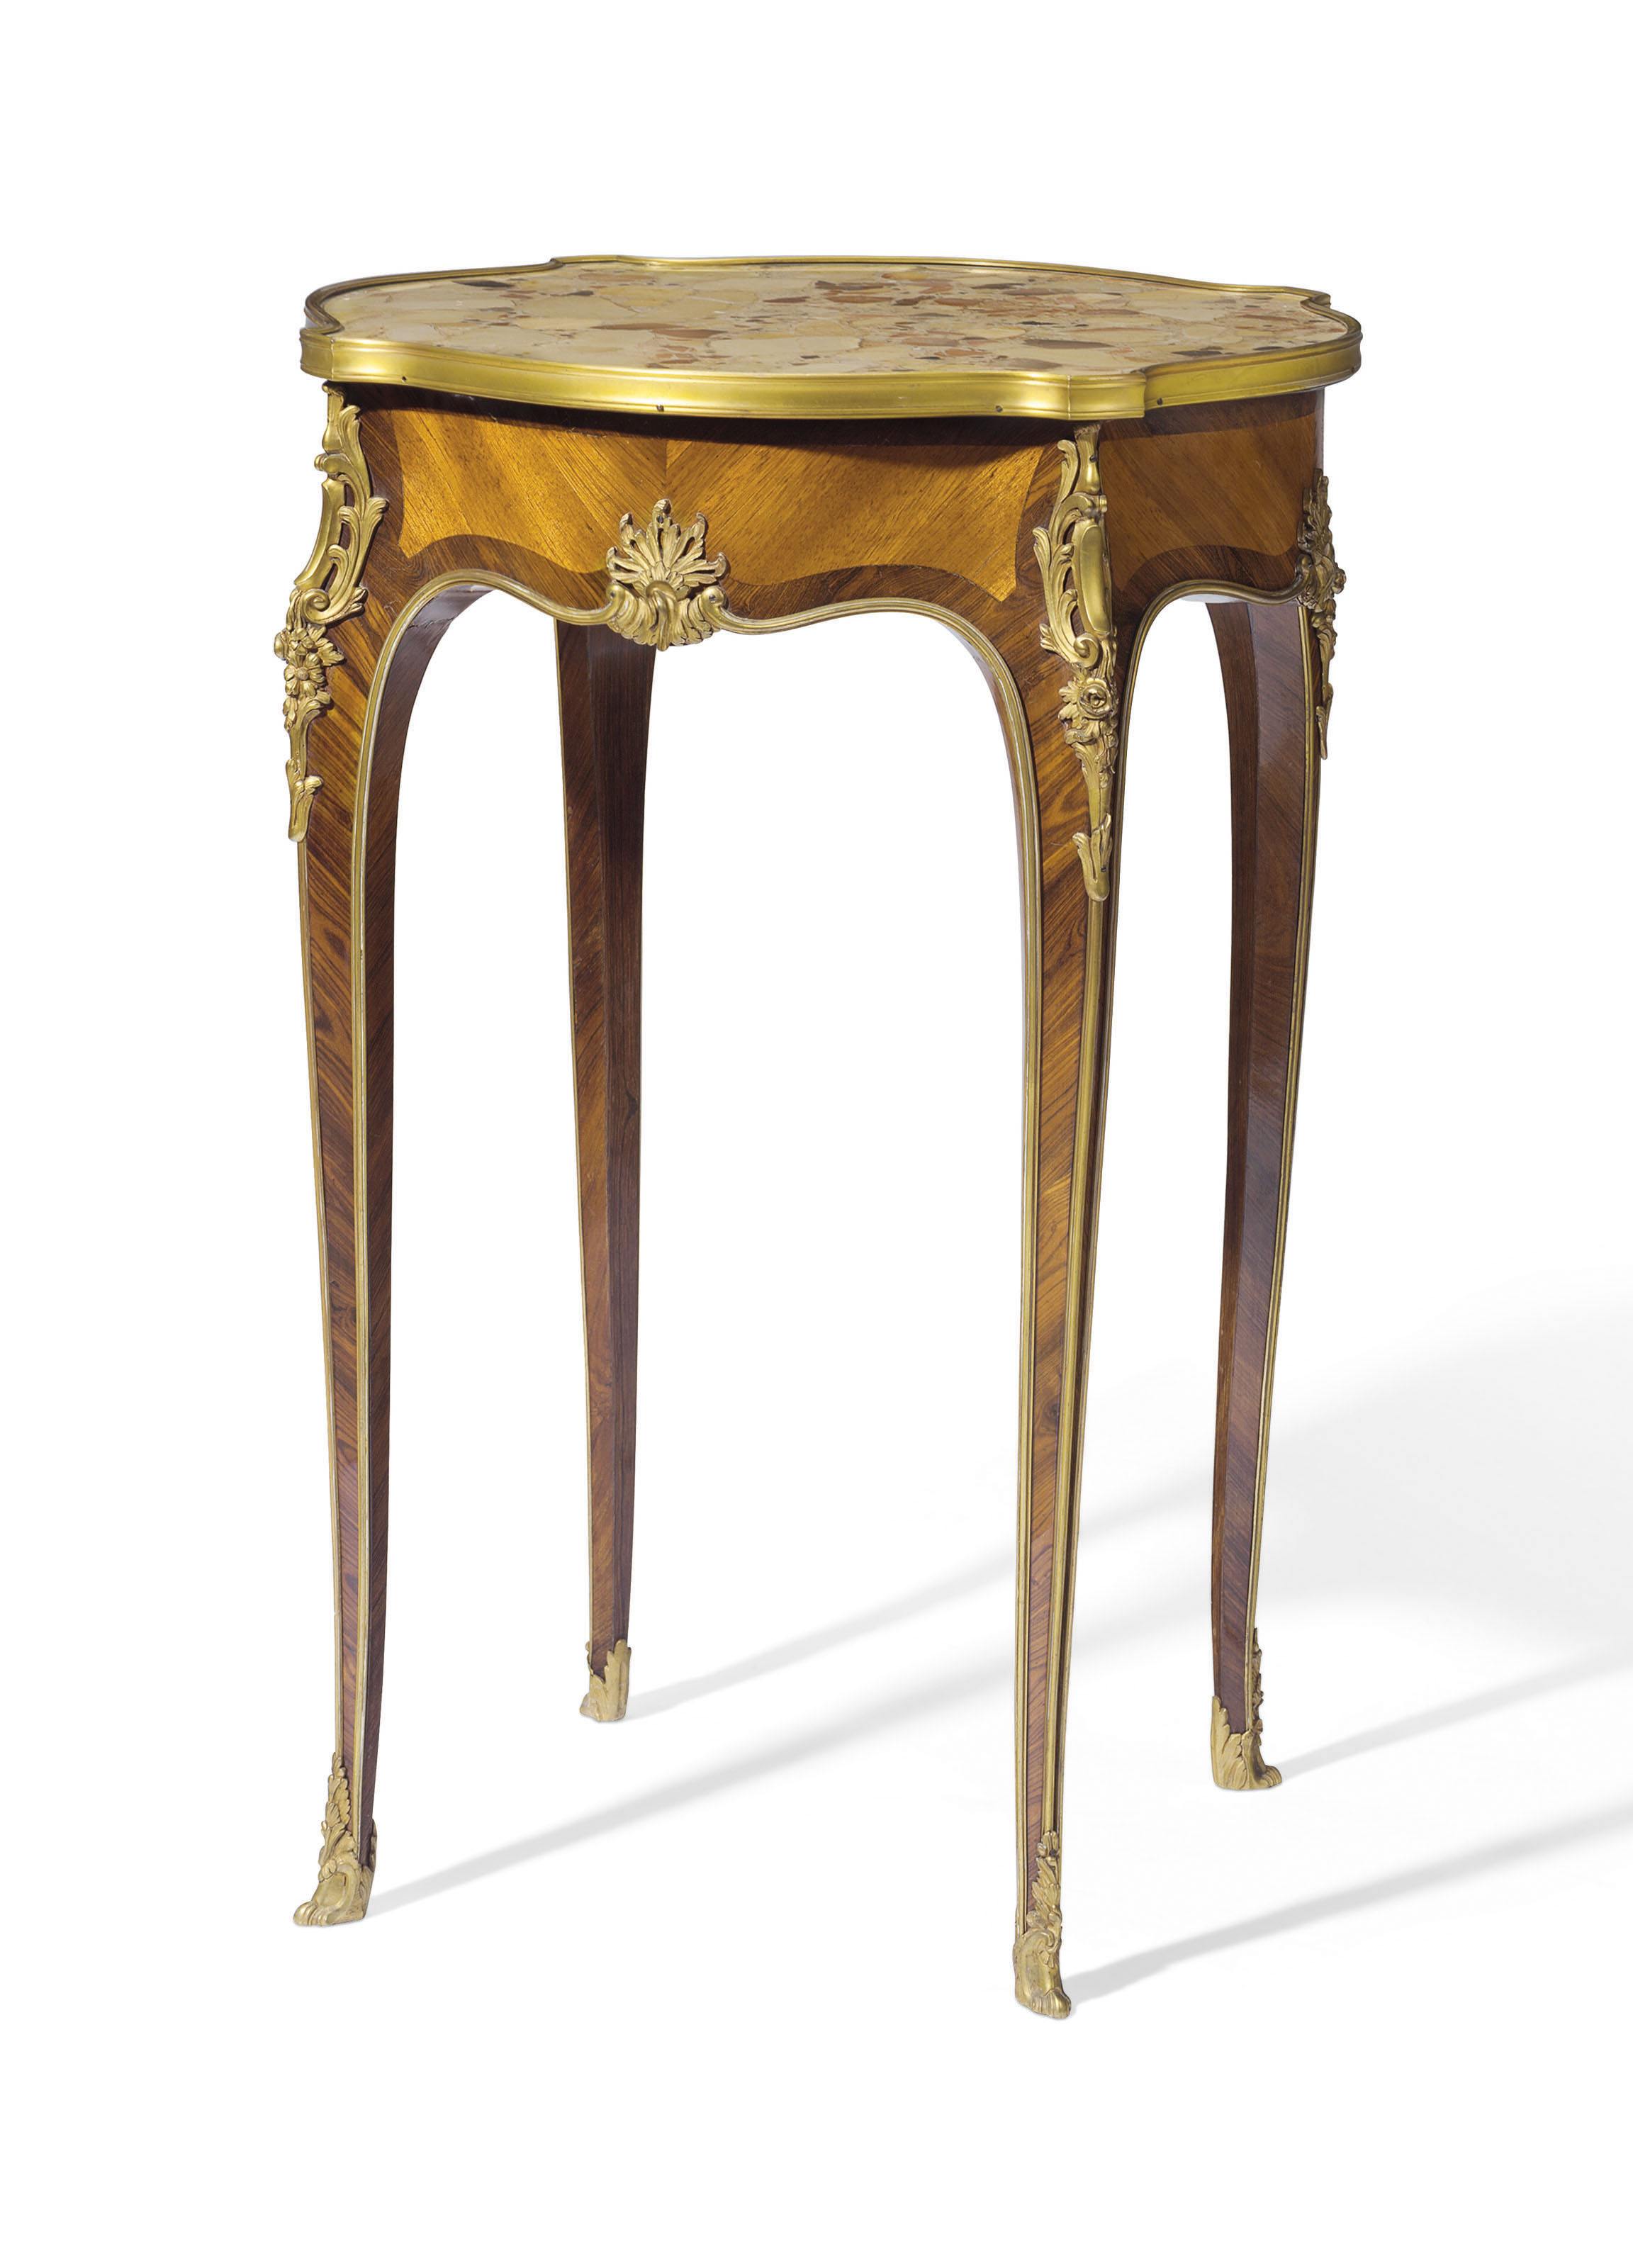 A French Ormolu Mounted Kingwood And Bois Satiné Gueridon Of Louis